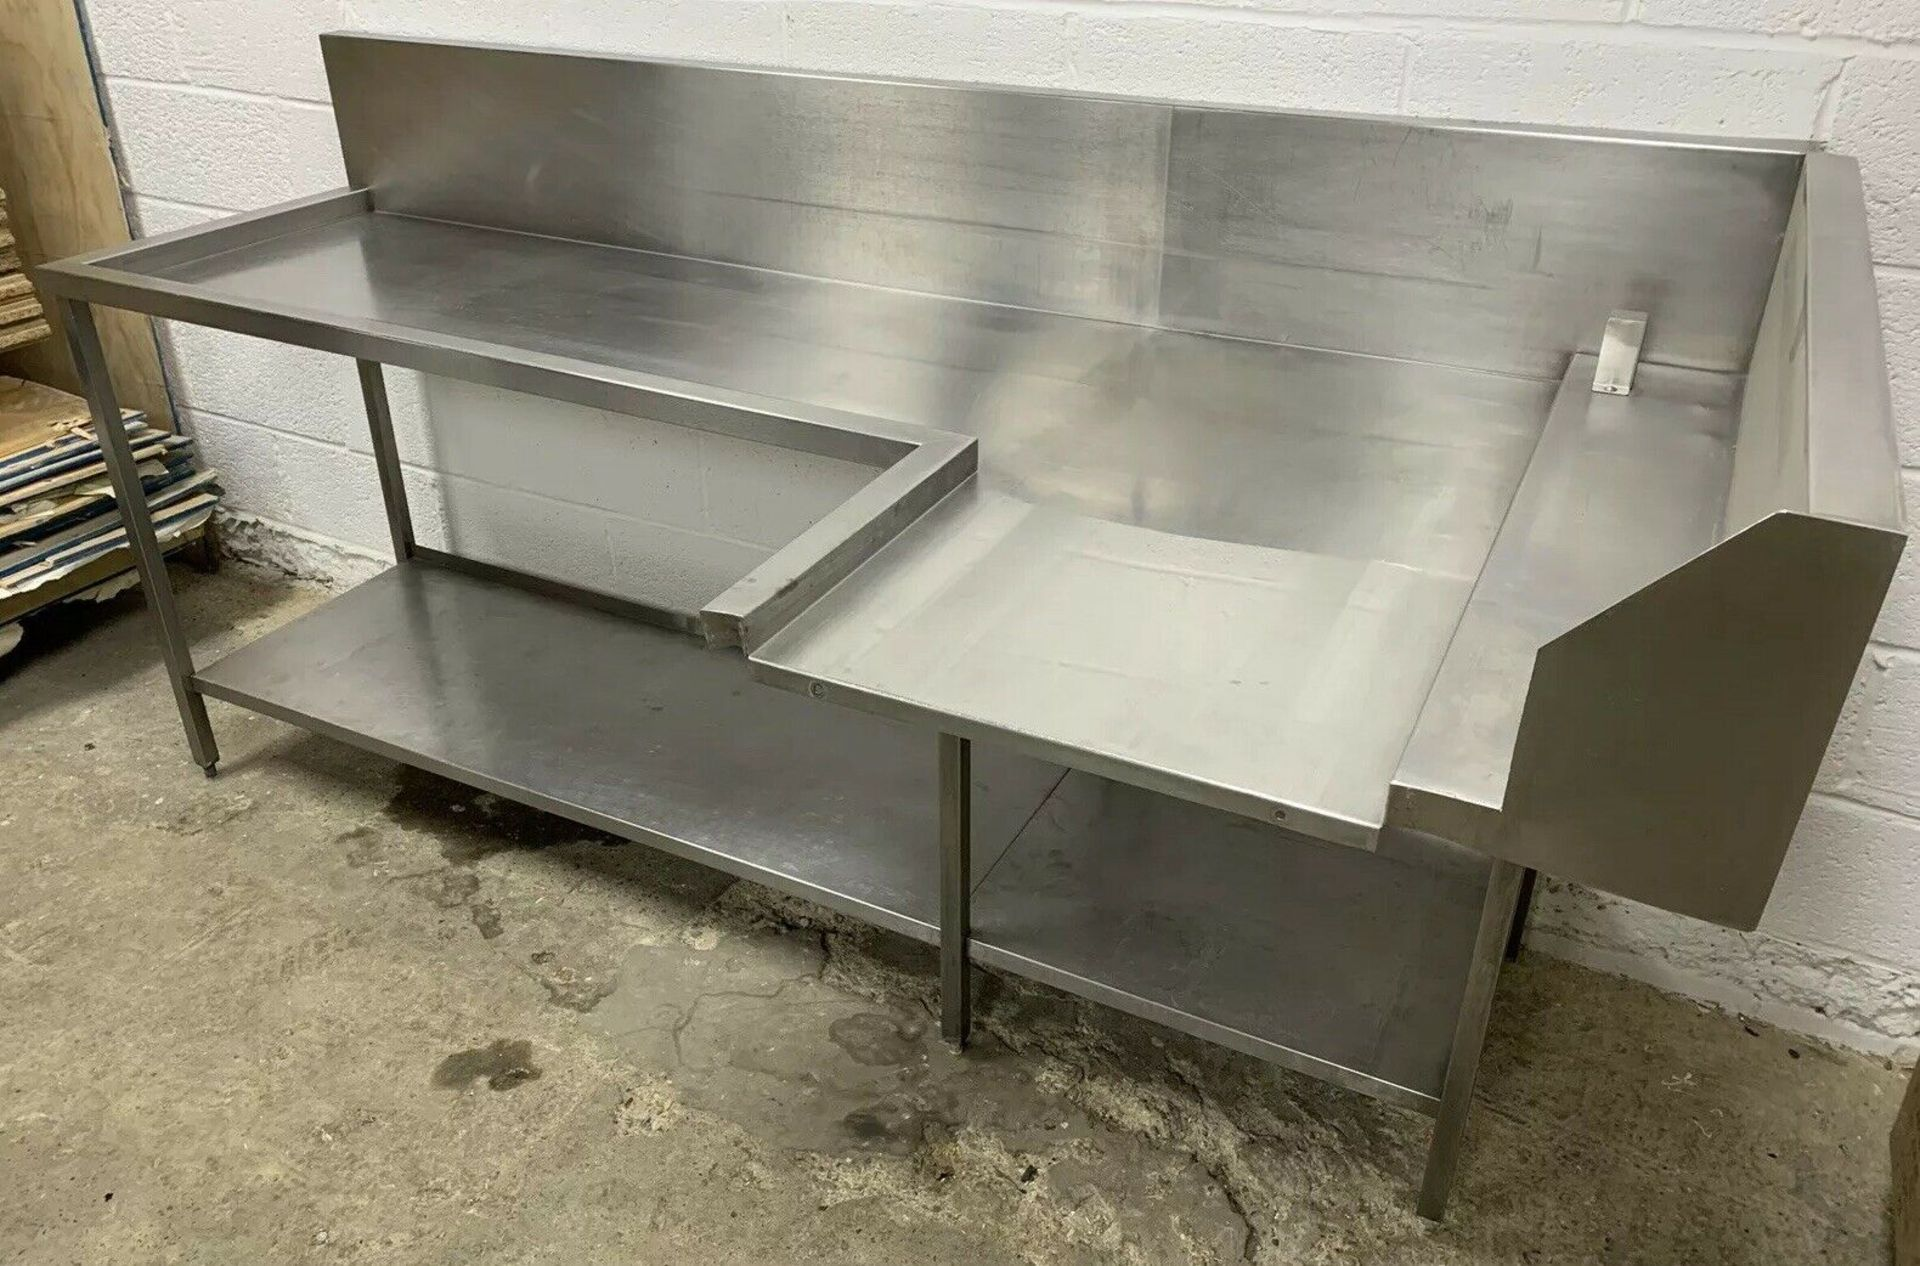 Lot 67 - Stainless Steel Dishwasher Outlet / Exit Table